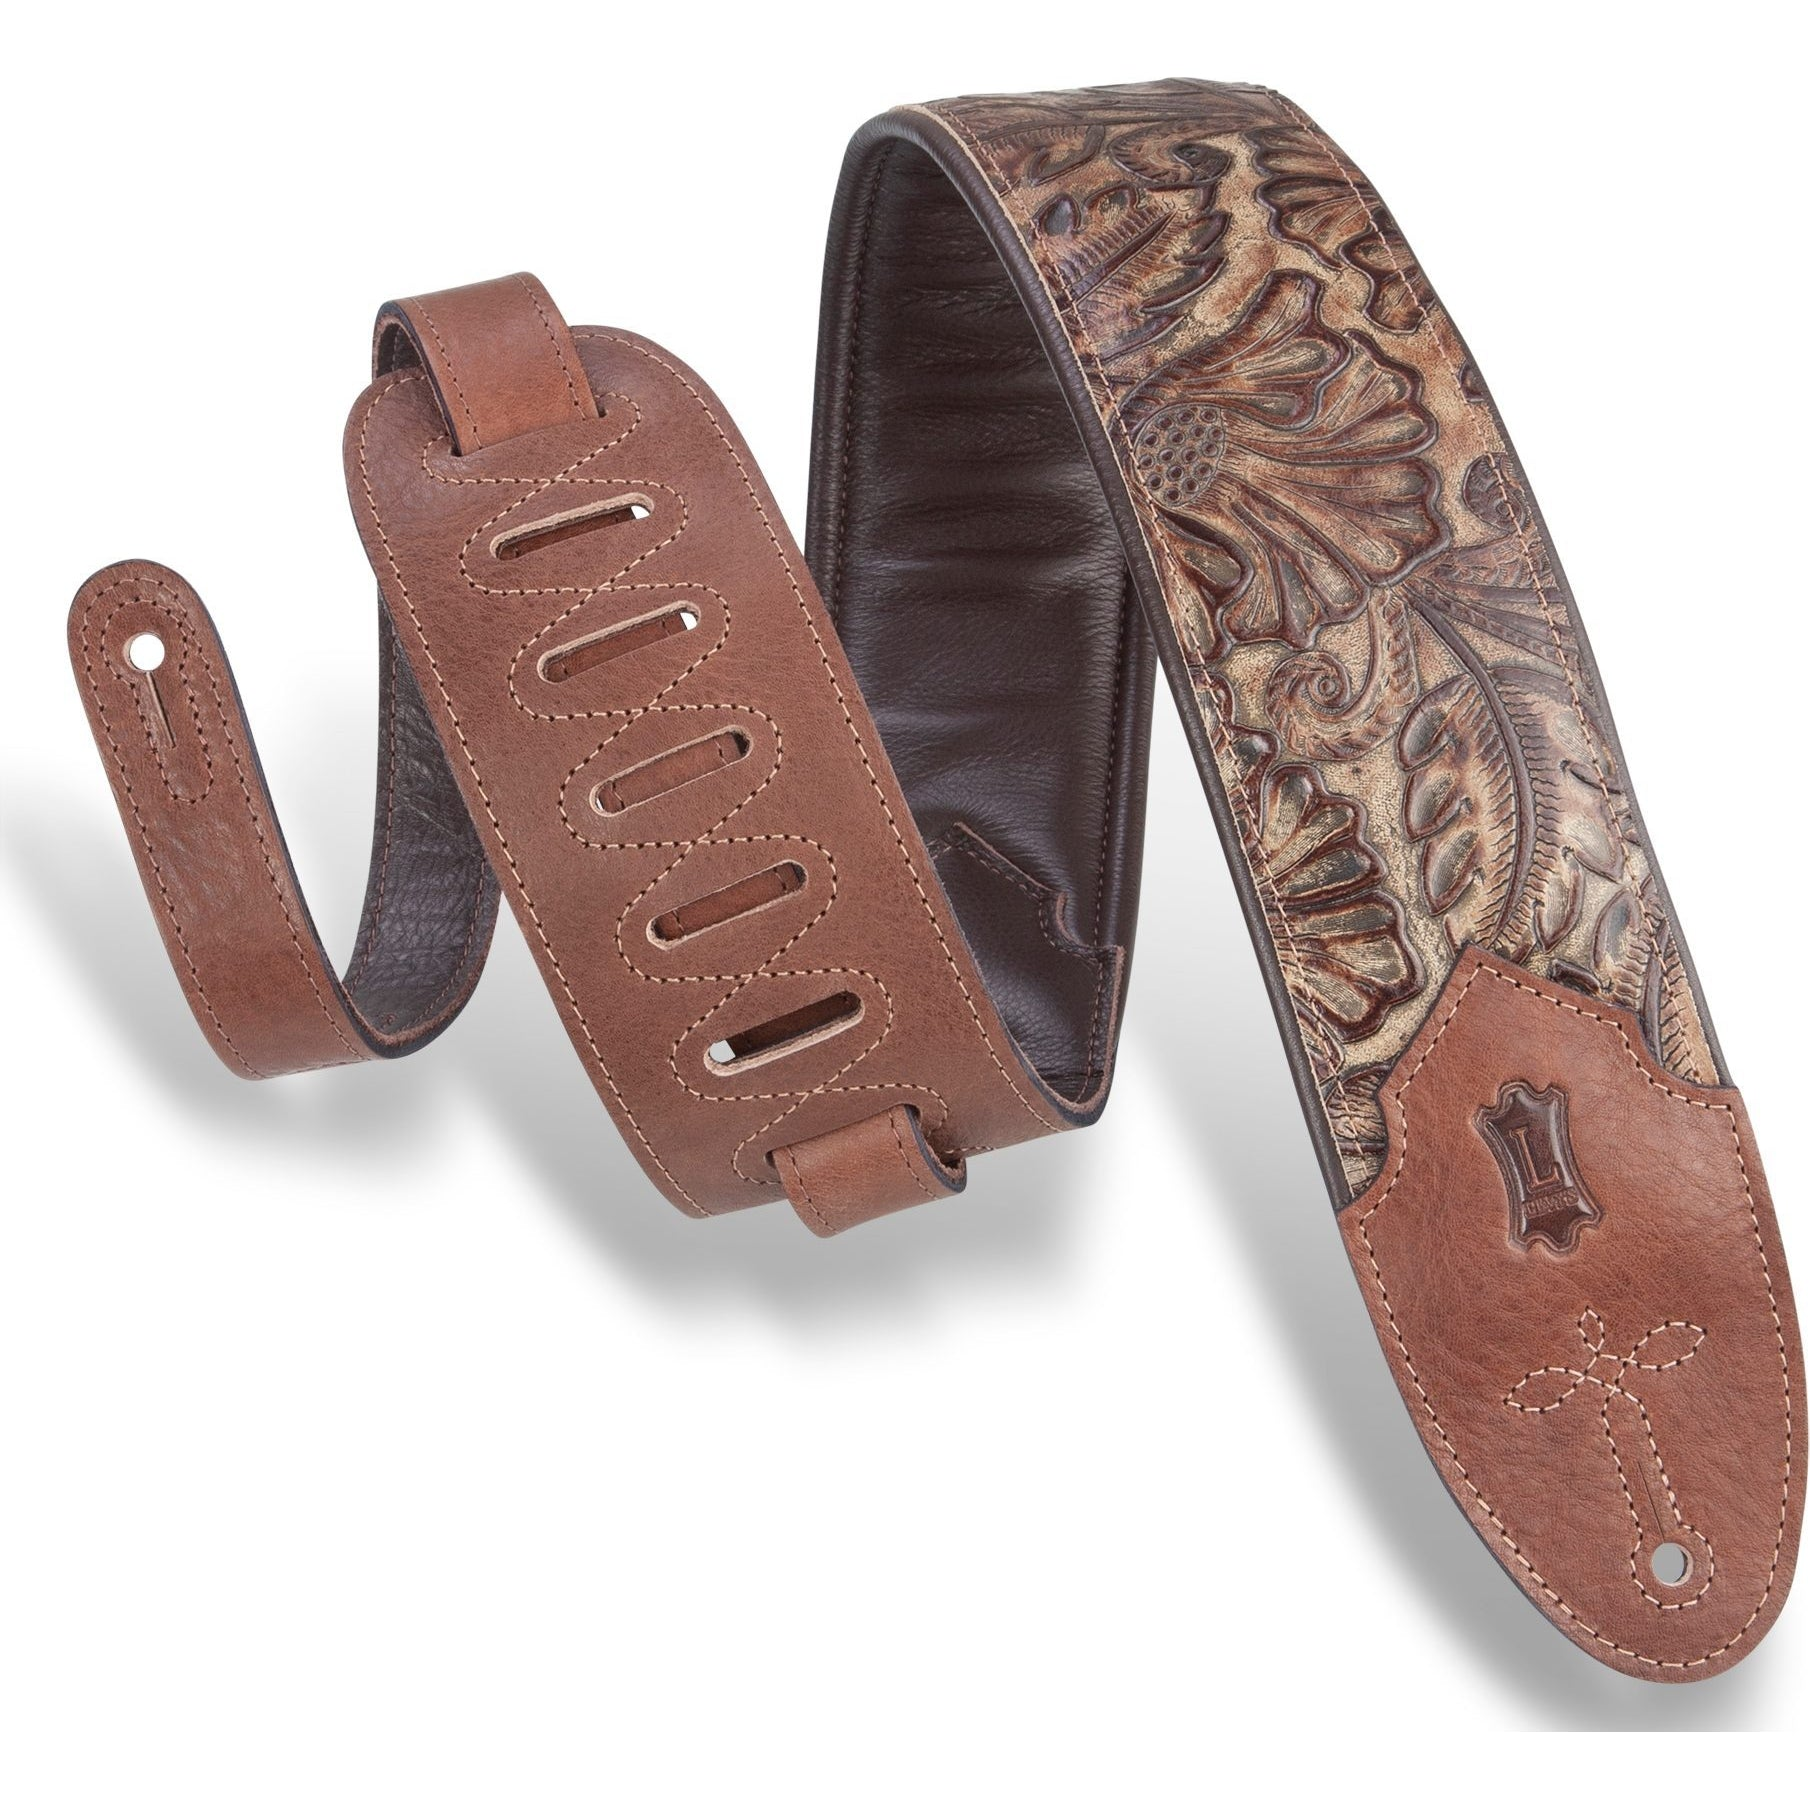 Levy's 3 Inch Wide Embossed Leather Guitar Strap, Palm Pecan, M4WP-002